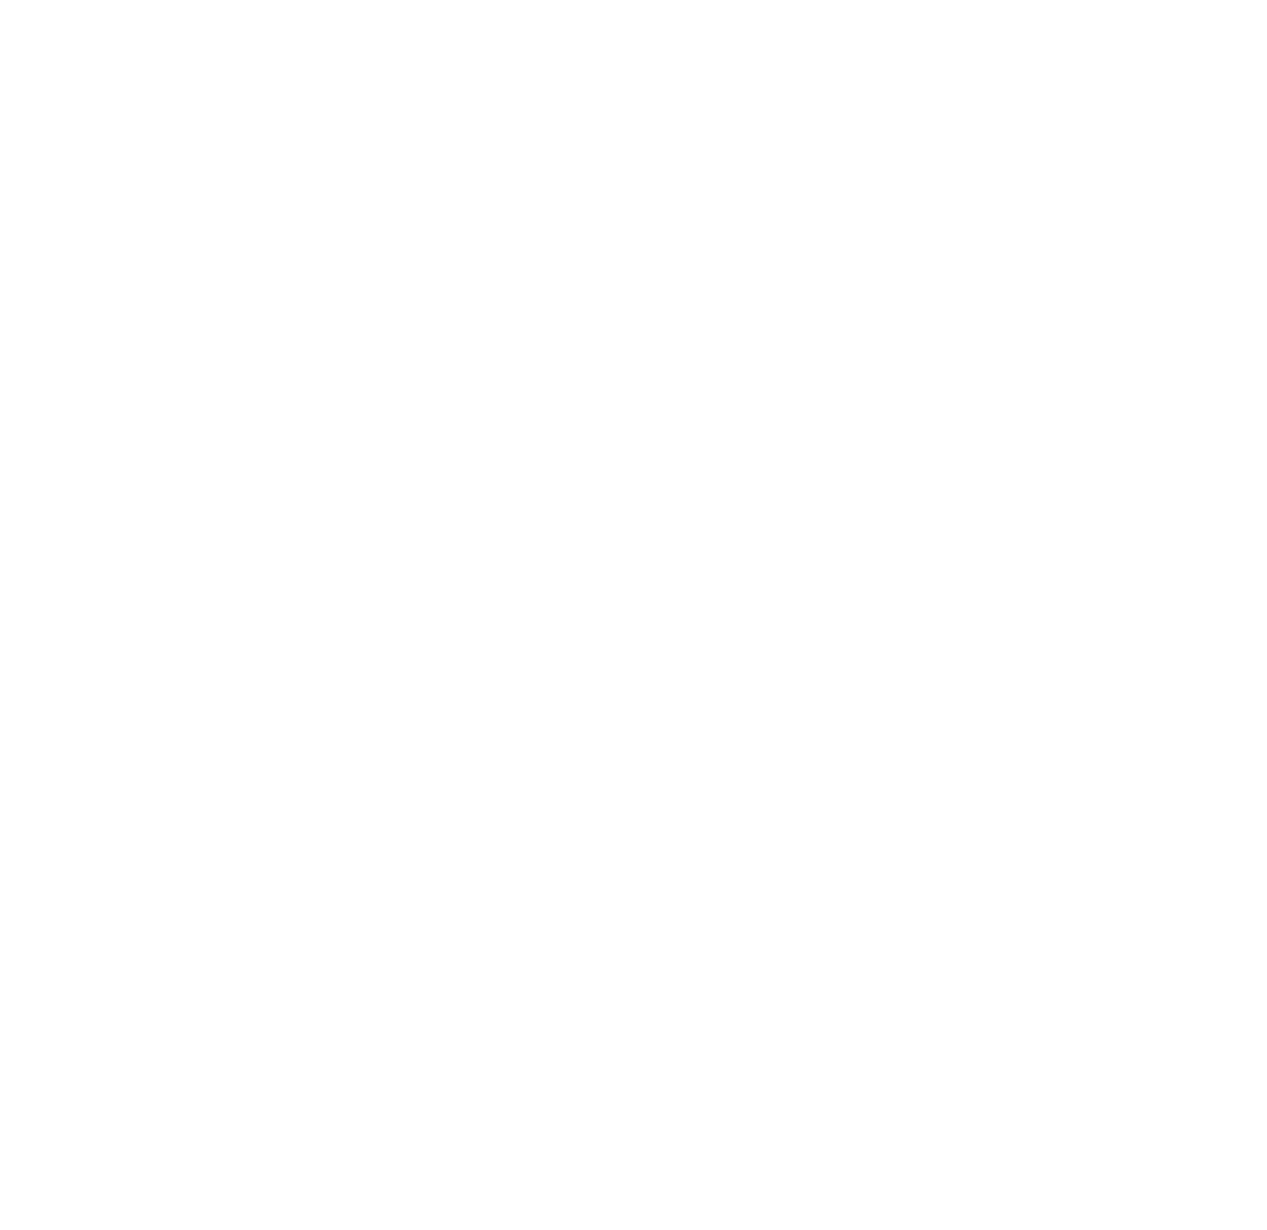 Golkar Group